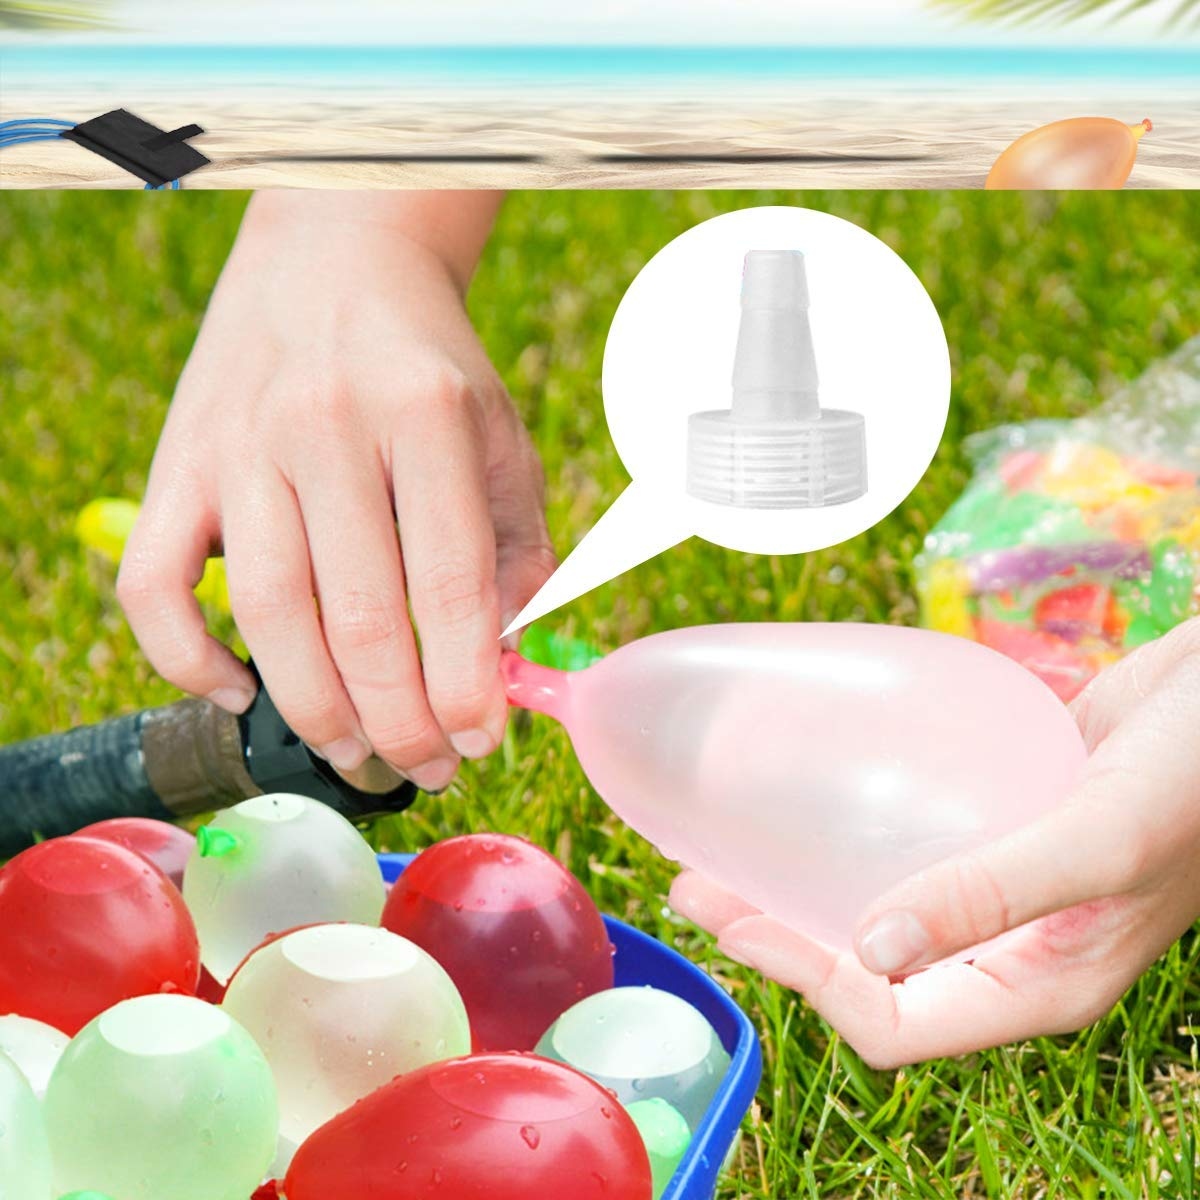 POKONBOY Water Balloon Launcher with 500 Water Balloons , 500 Yards Water Balloon Slingshot / Cannon / Launcher with 2 Refill Kits Fight Pool Party Toy, 3 Person Giant Angry Birds Summer Beach Games by POKONBOY (Image #4)